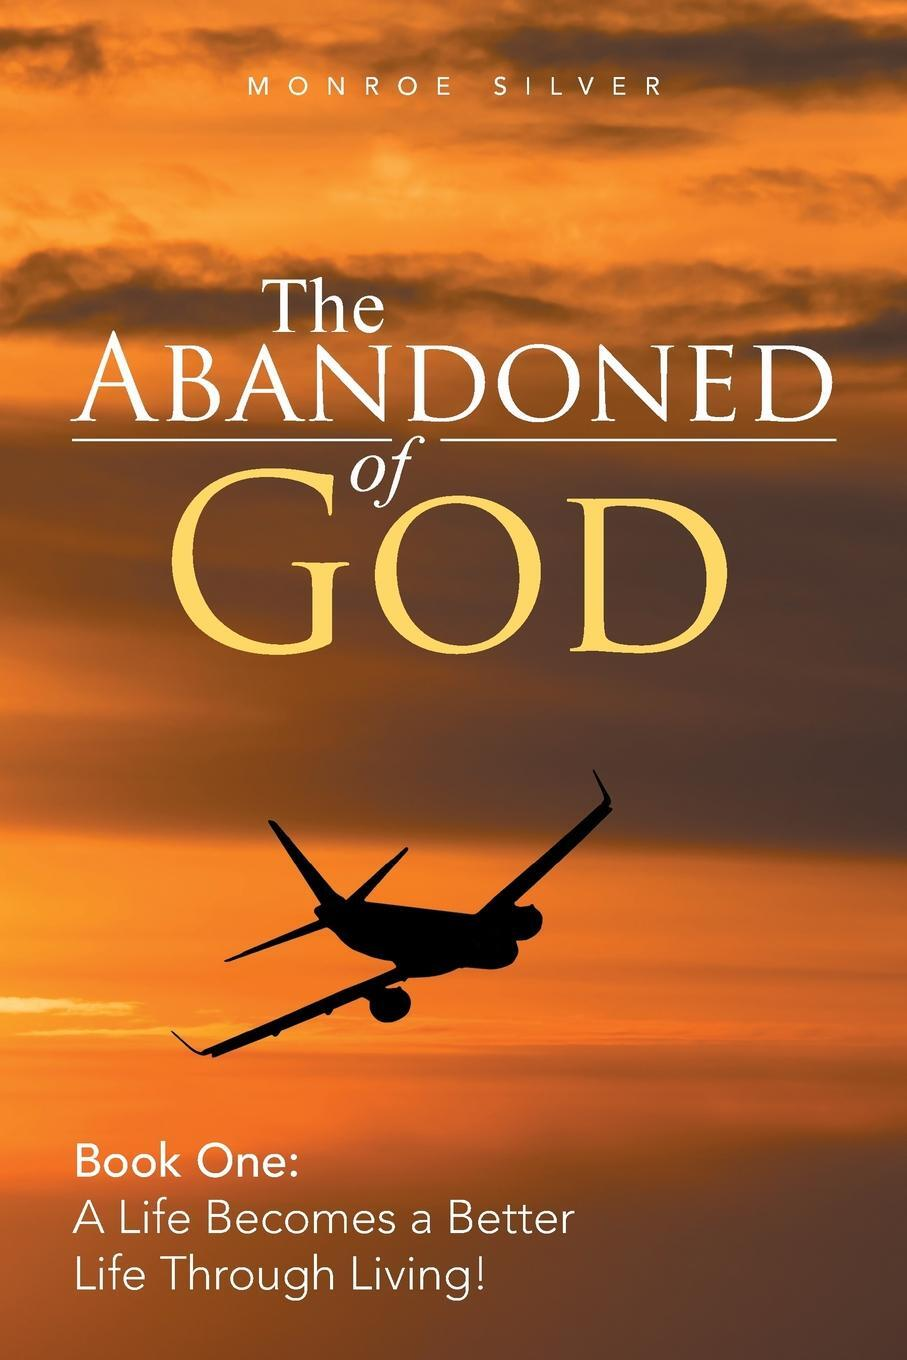 The Abandoned of God. Book One: a Life Becomes a Better Life Through Living!